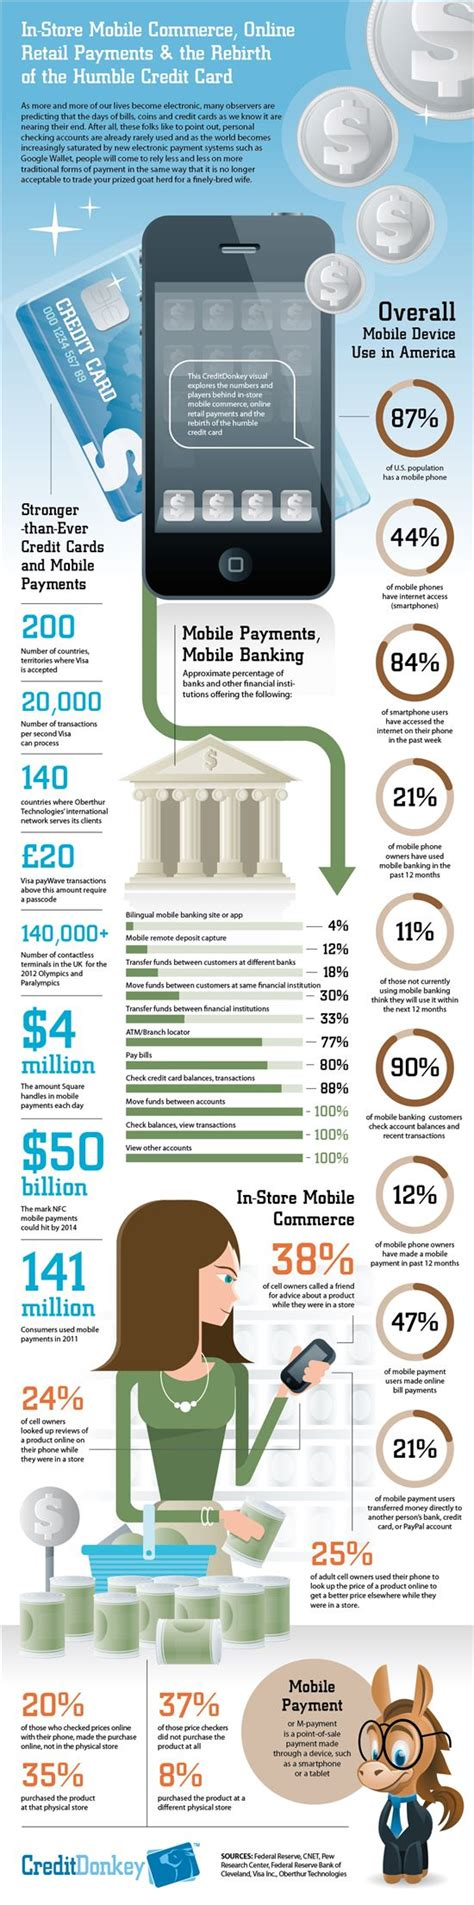 Bank of america financial center is located at 6603 4th st nw albuquerque, nm 87107. Key facts & figures behind the trend toward mobile payments - CreditDonkey | Mobile payments ...